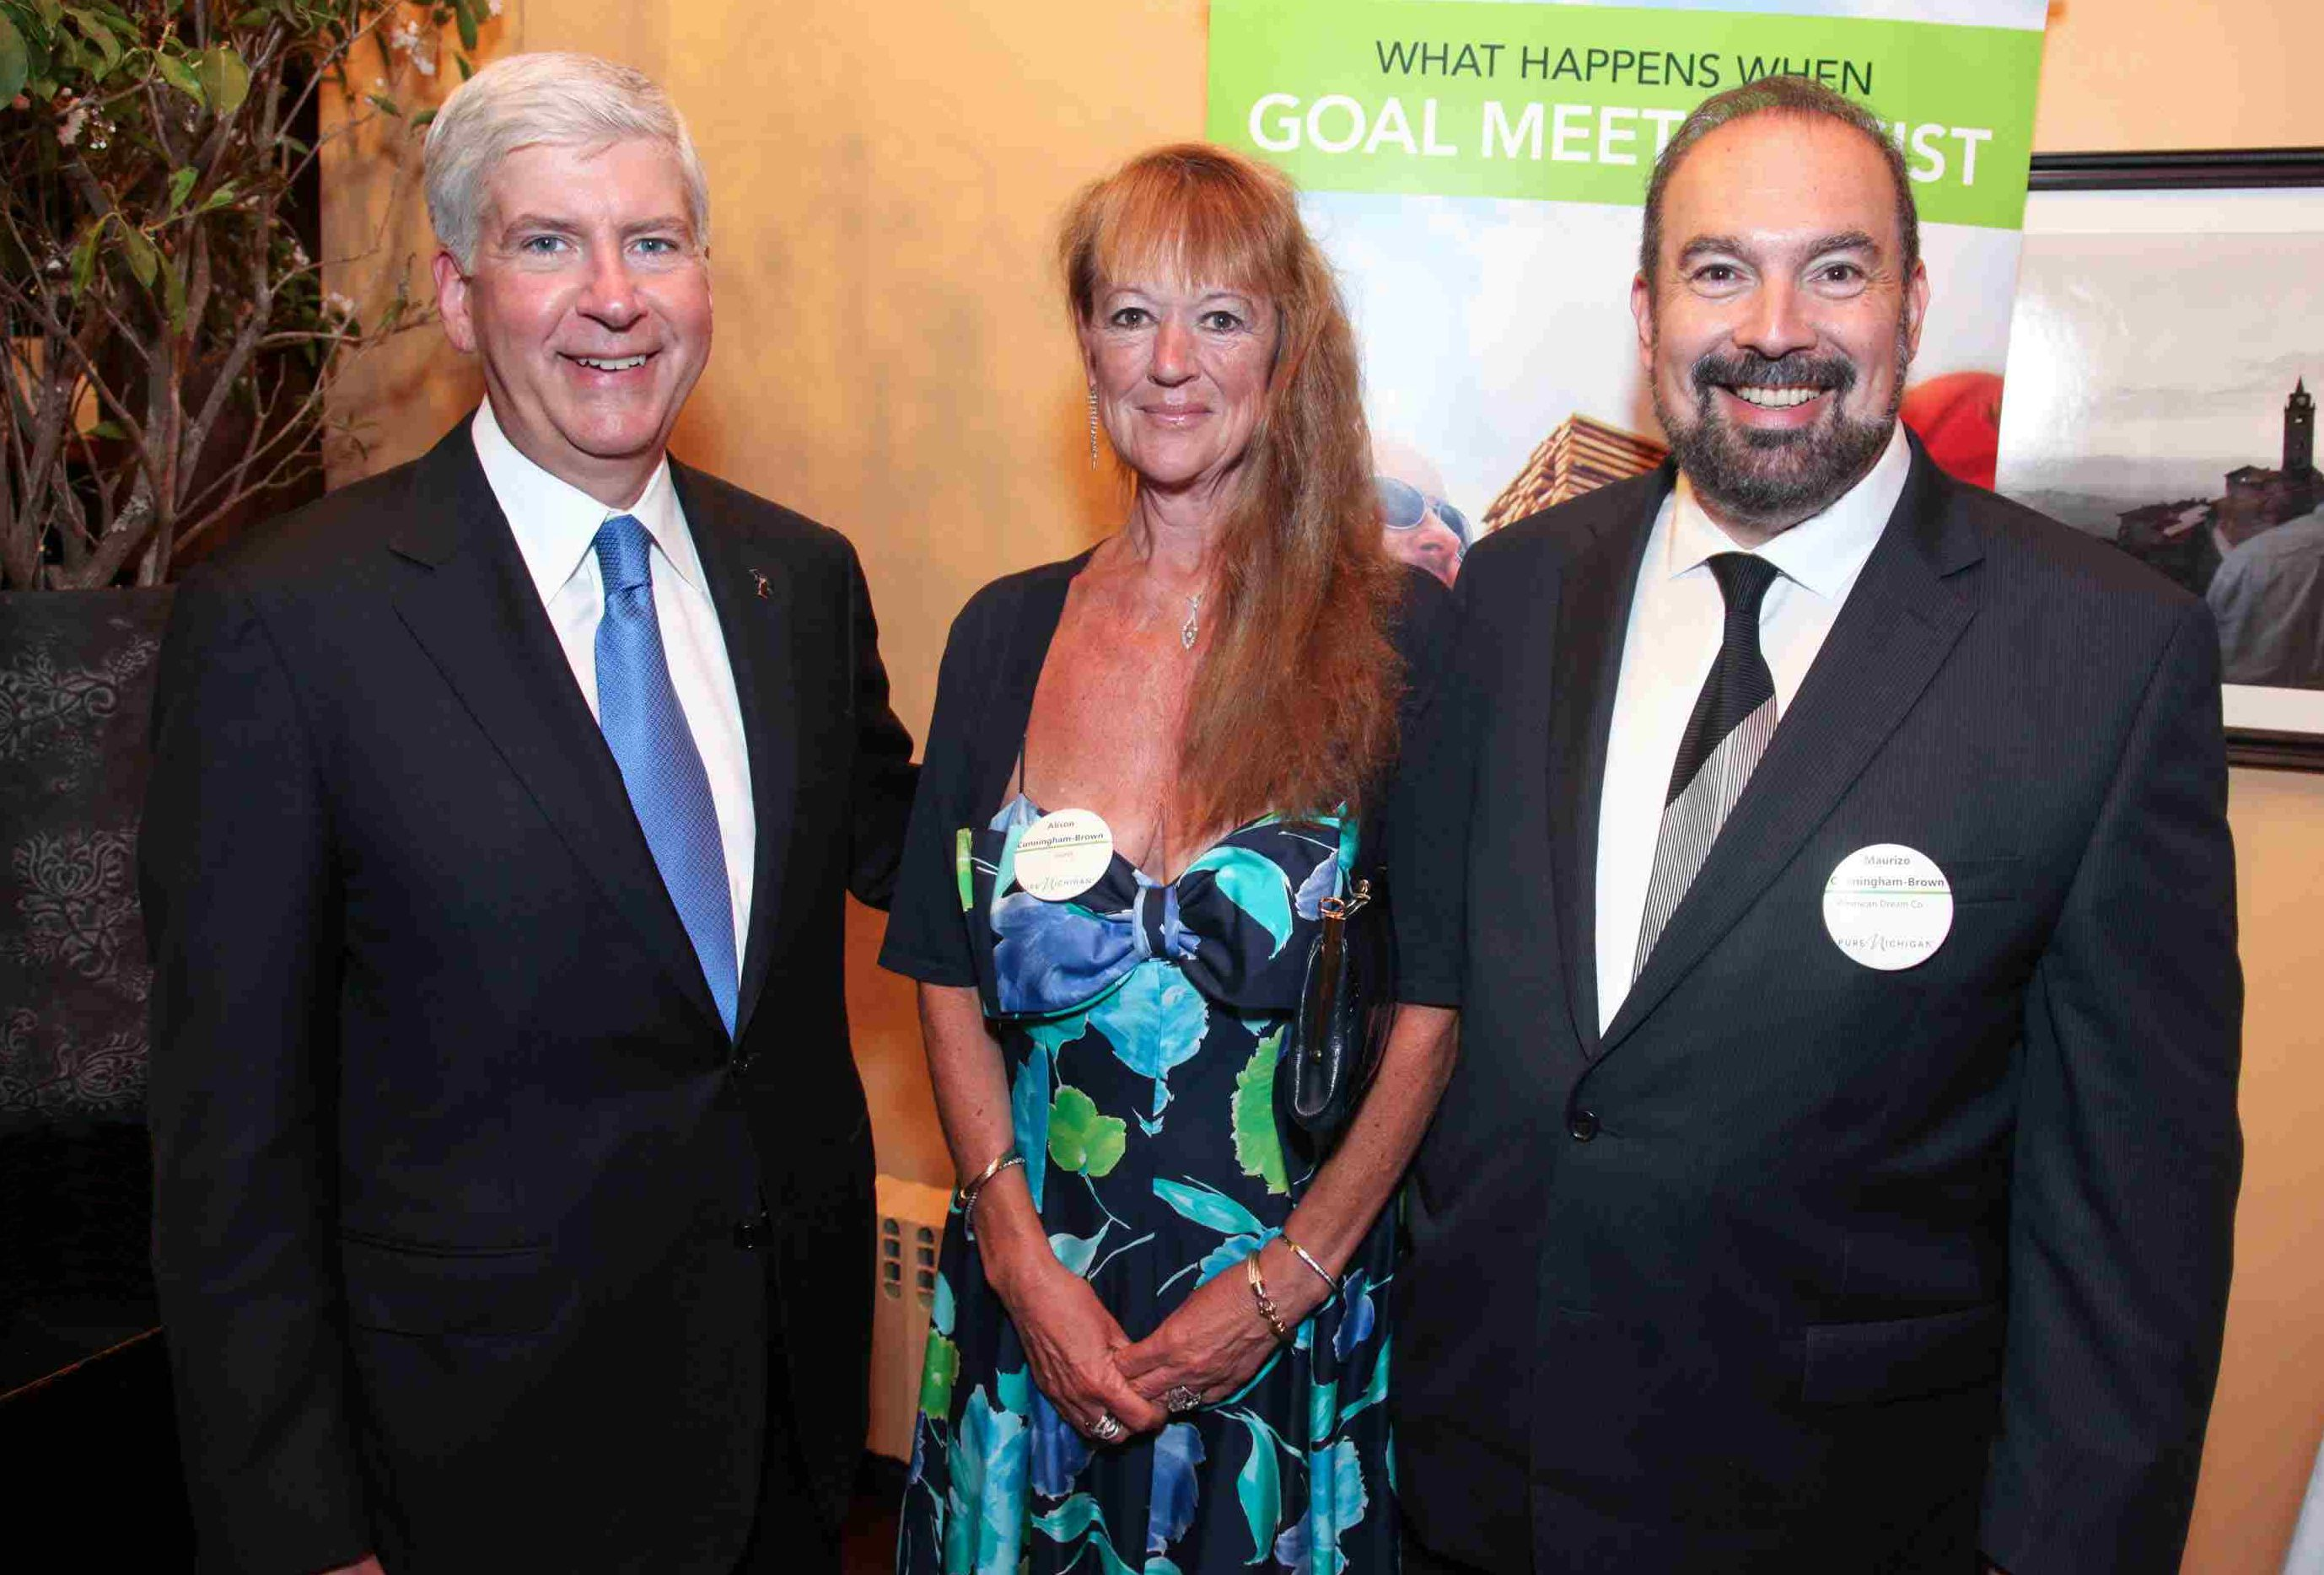 Governor_Rick_Snyder_(MI)_with_Maurizio_Cunningham-Brown_(CEO_American_Dream_Co)_and_his_wife_Alison